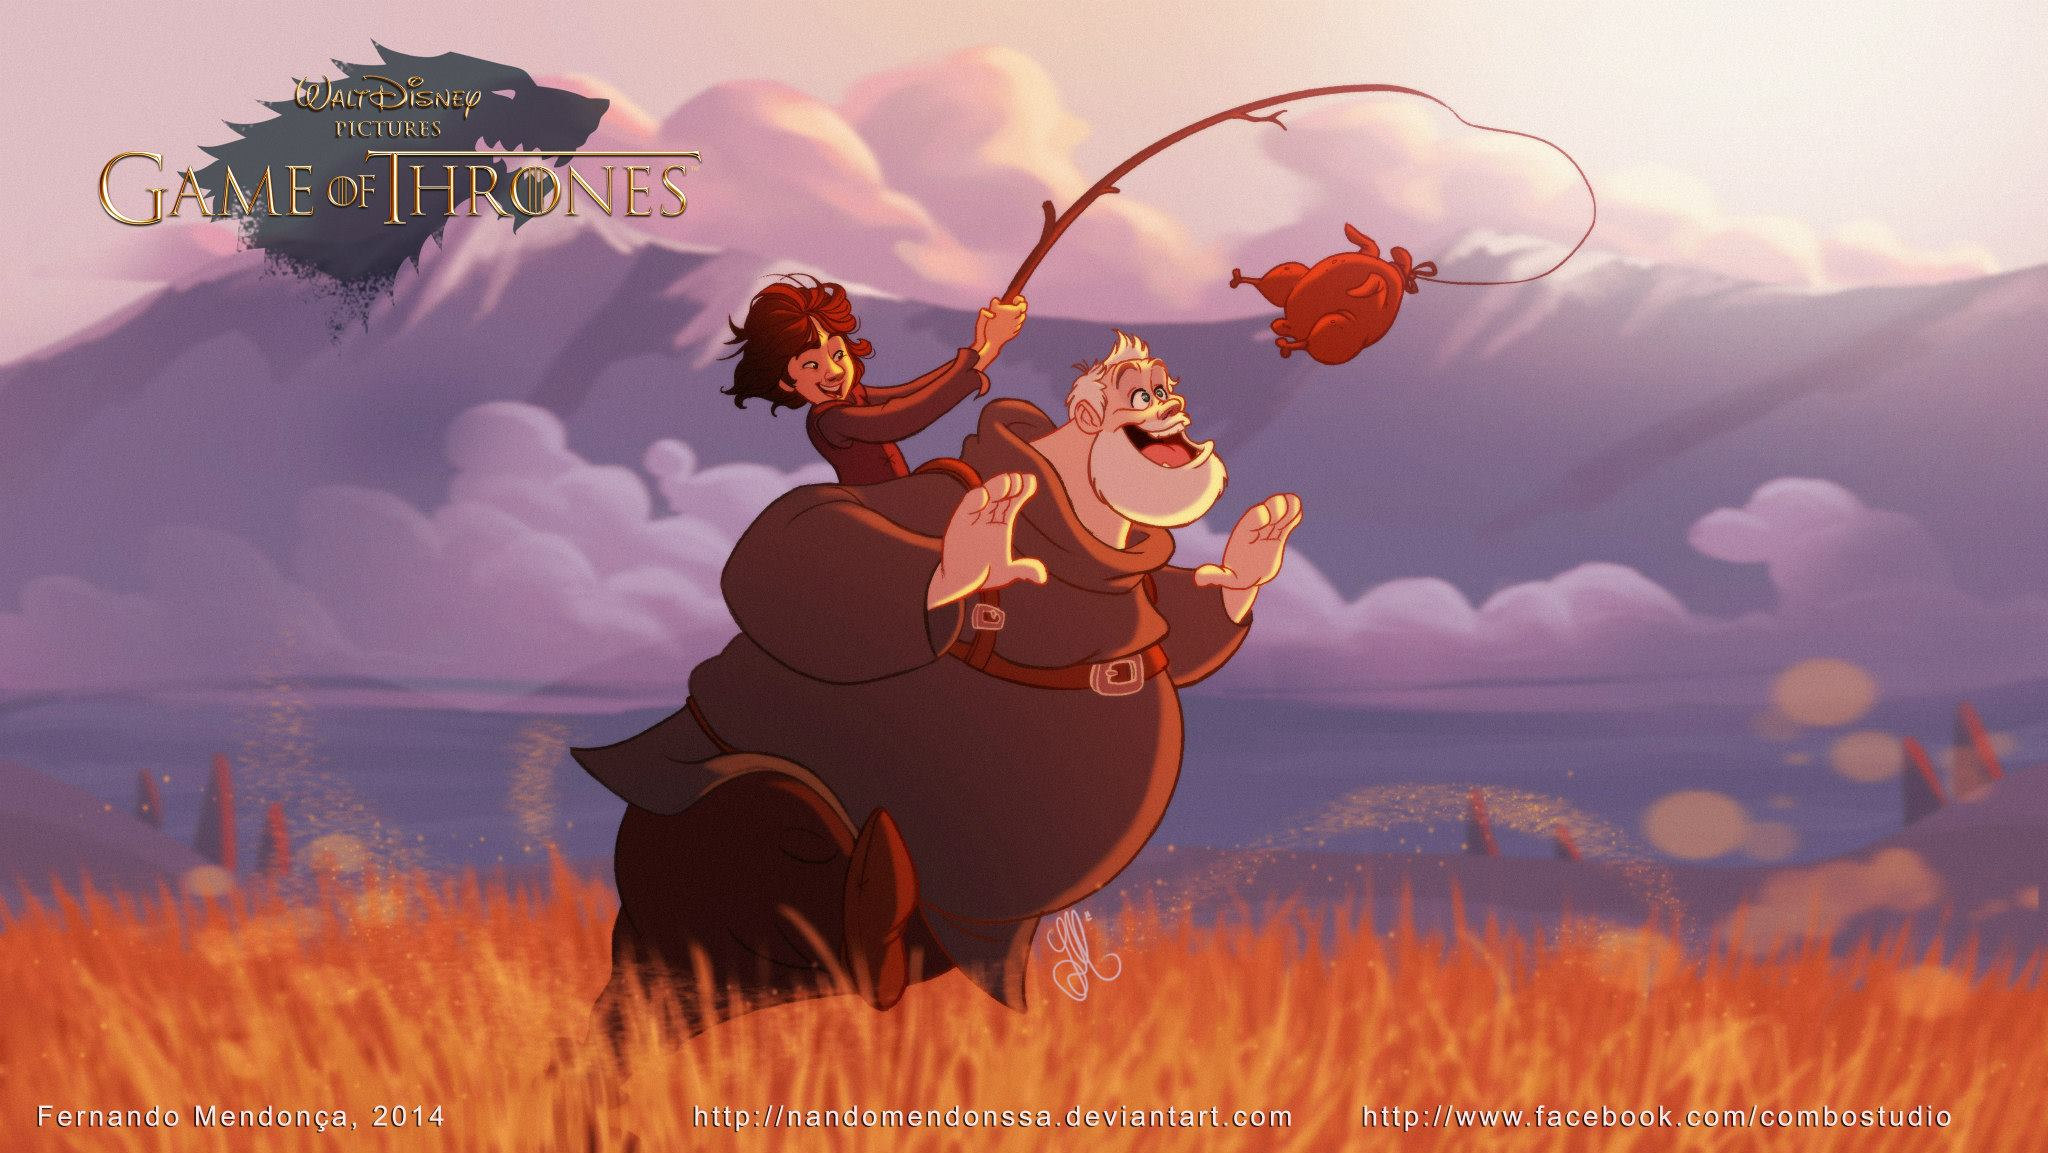 Hodor Disney Illustration - Fernando Mendonca